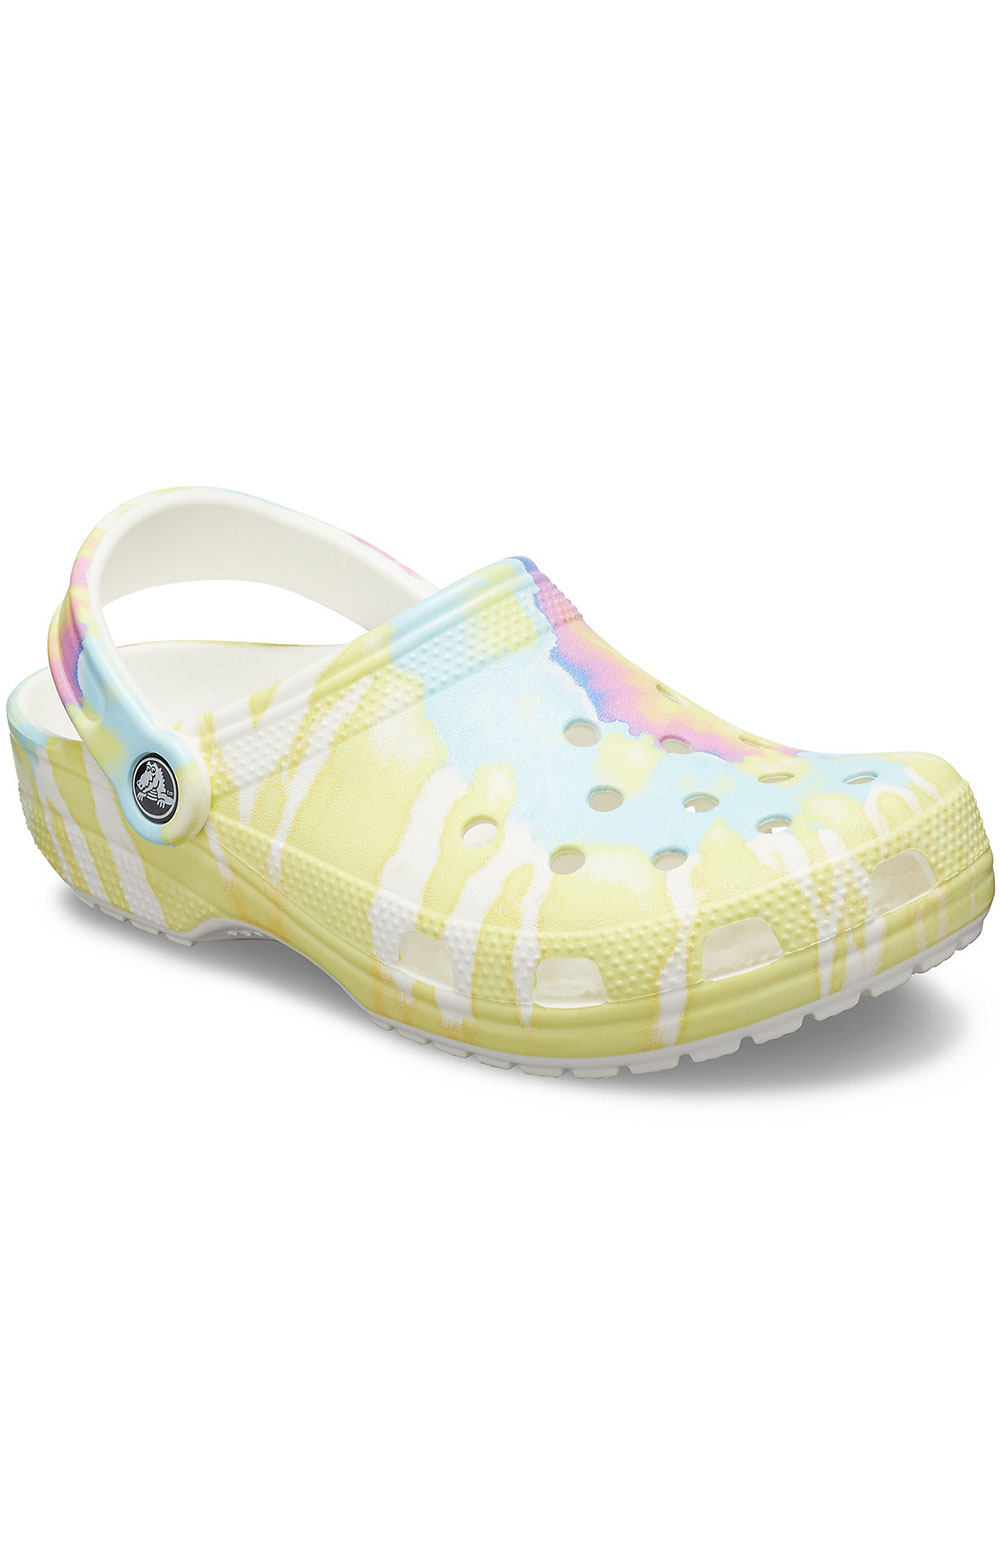 Classic Tie-Dye Graphic Clogs - White/Multi